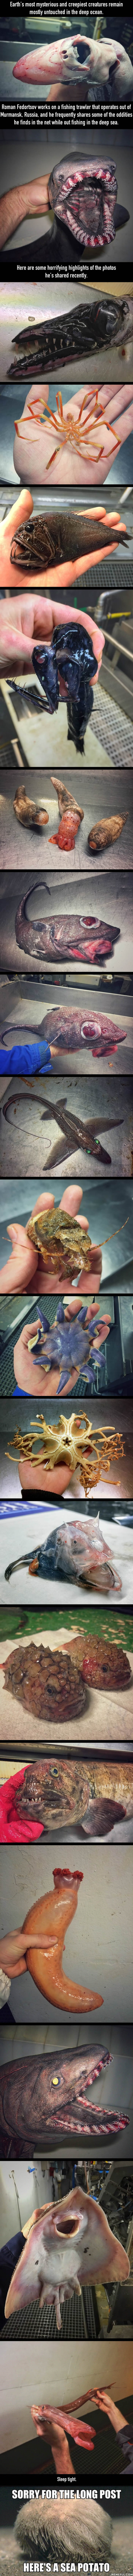 Russian Deep-Sea Fisherman's Discoveries Will Fuel Your Nightmares (By Roman Fedortsov )